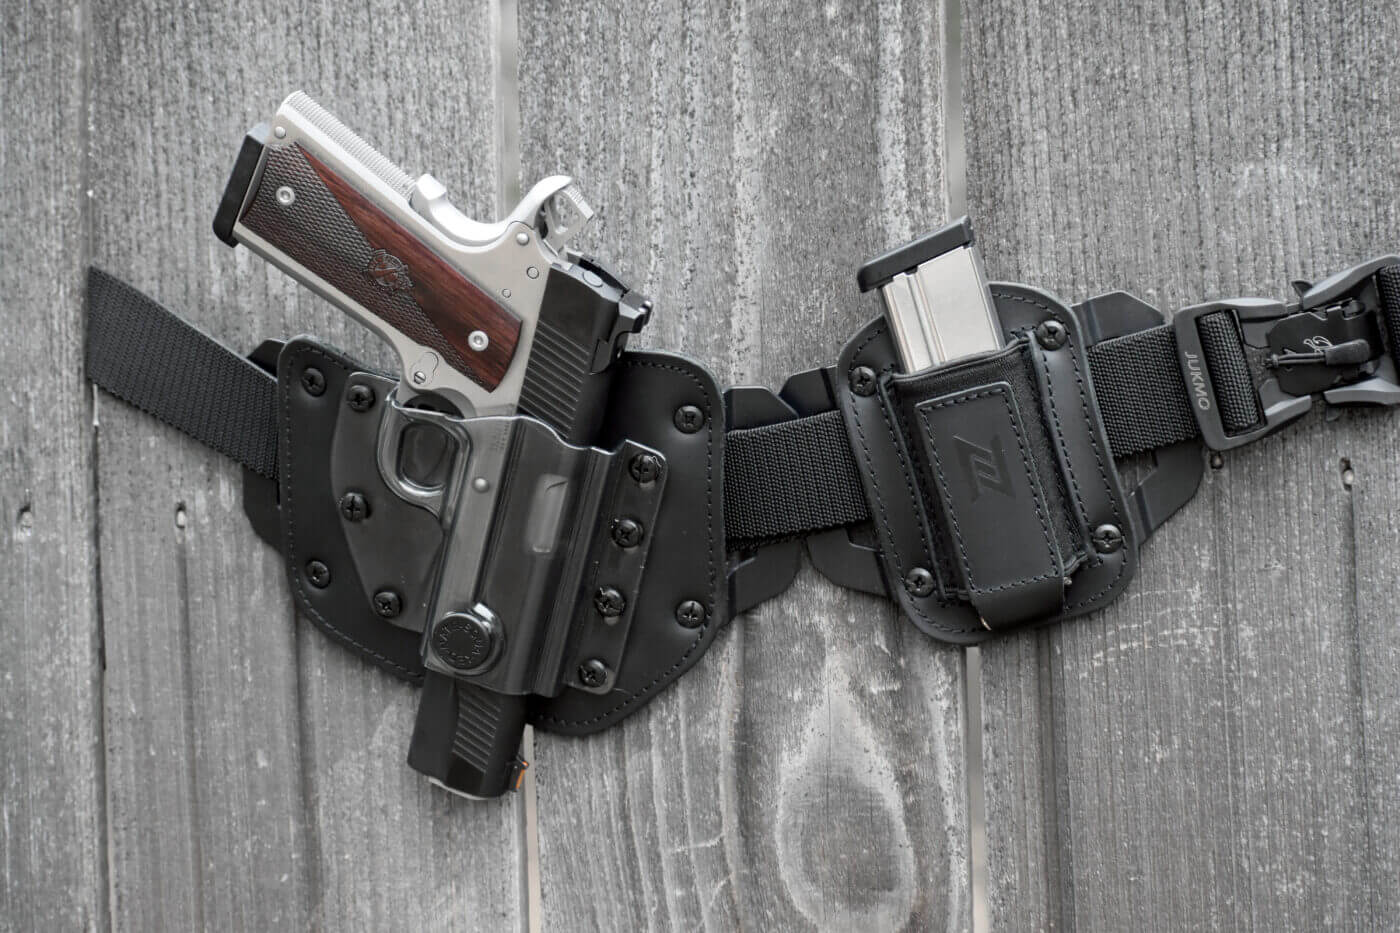 Ronin carried in an N8 holster